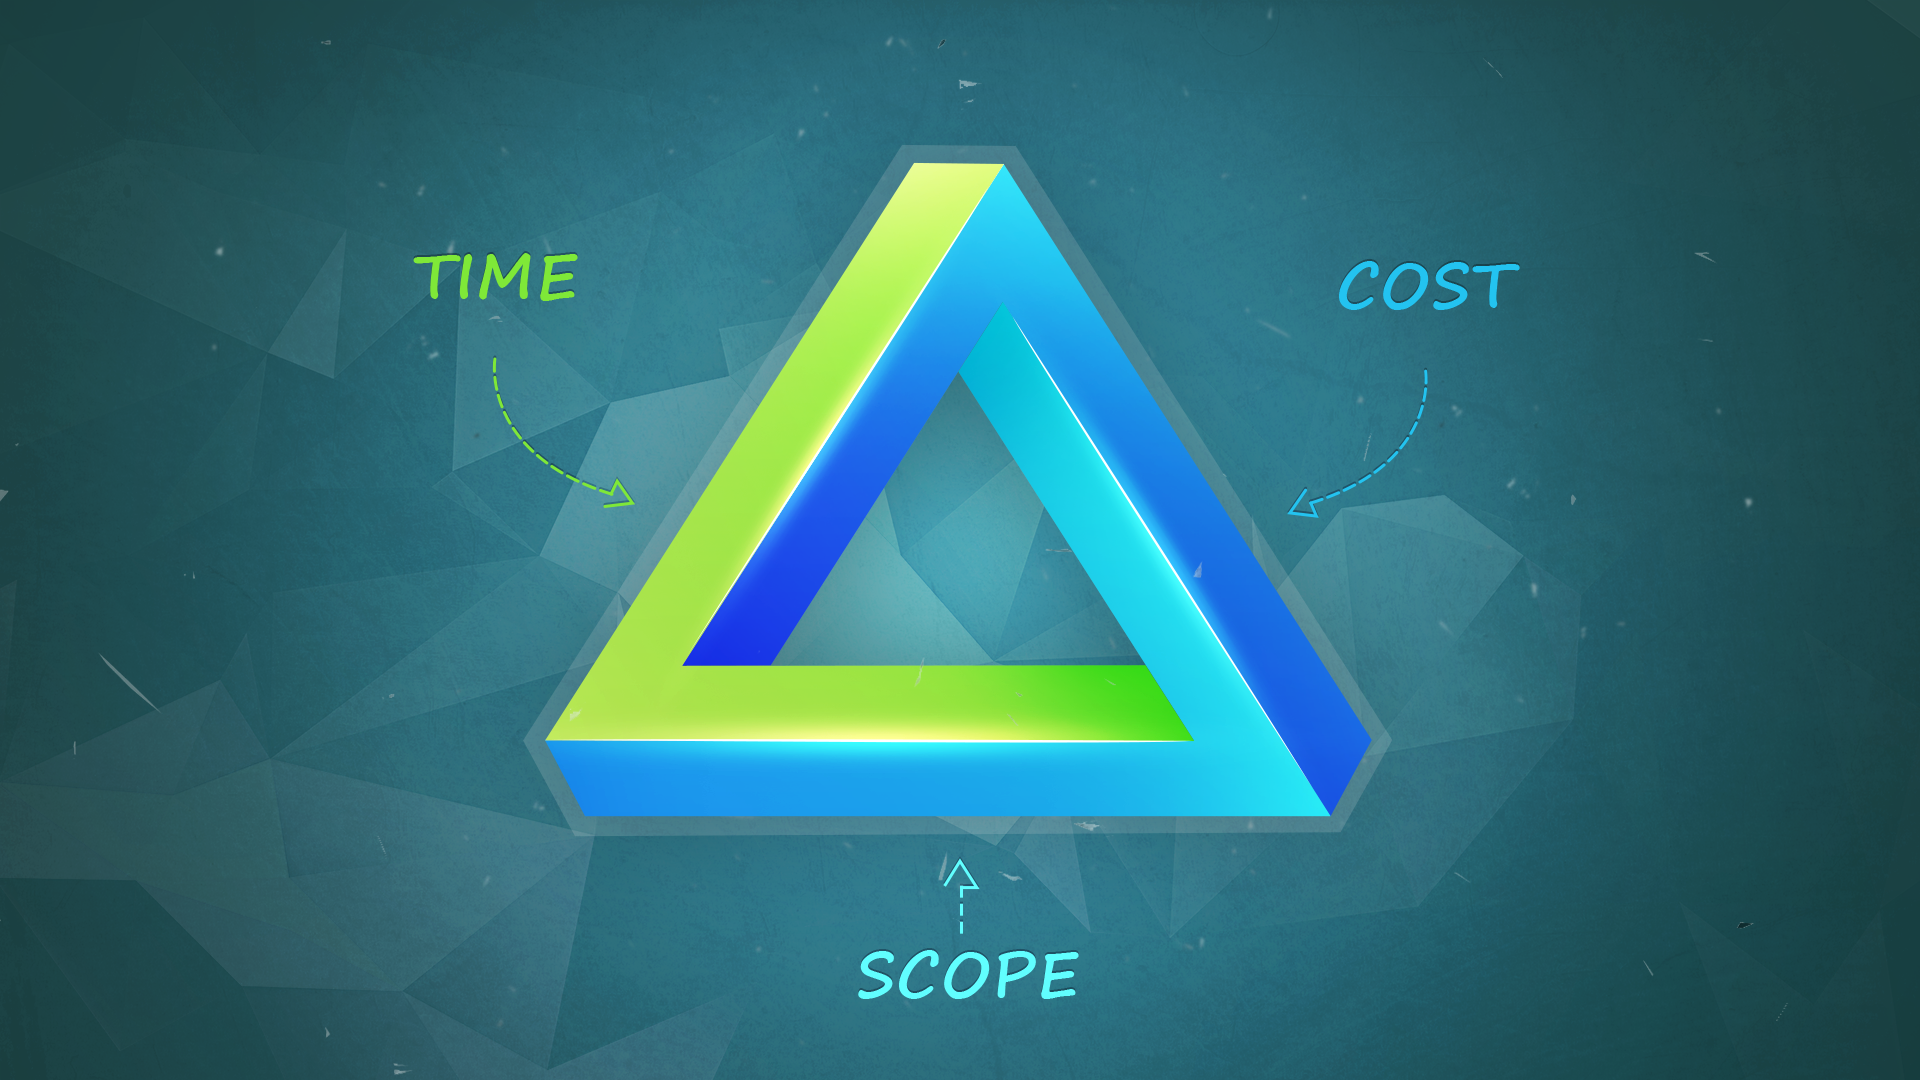 Effectively Using the Triple Constraint Triangle on the Teamwork.com blog